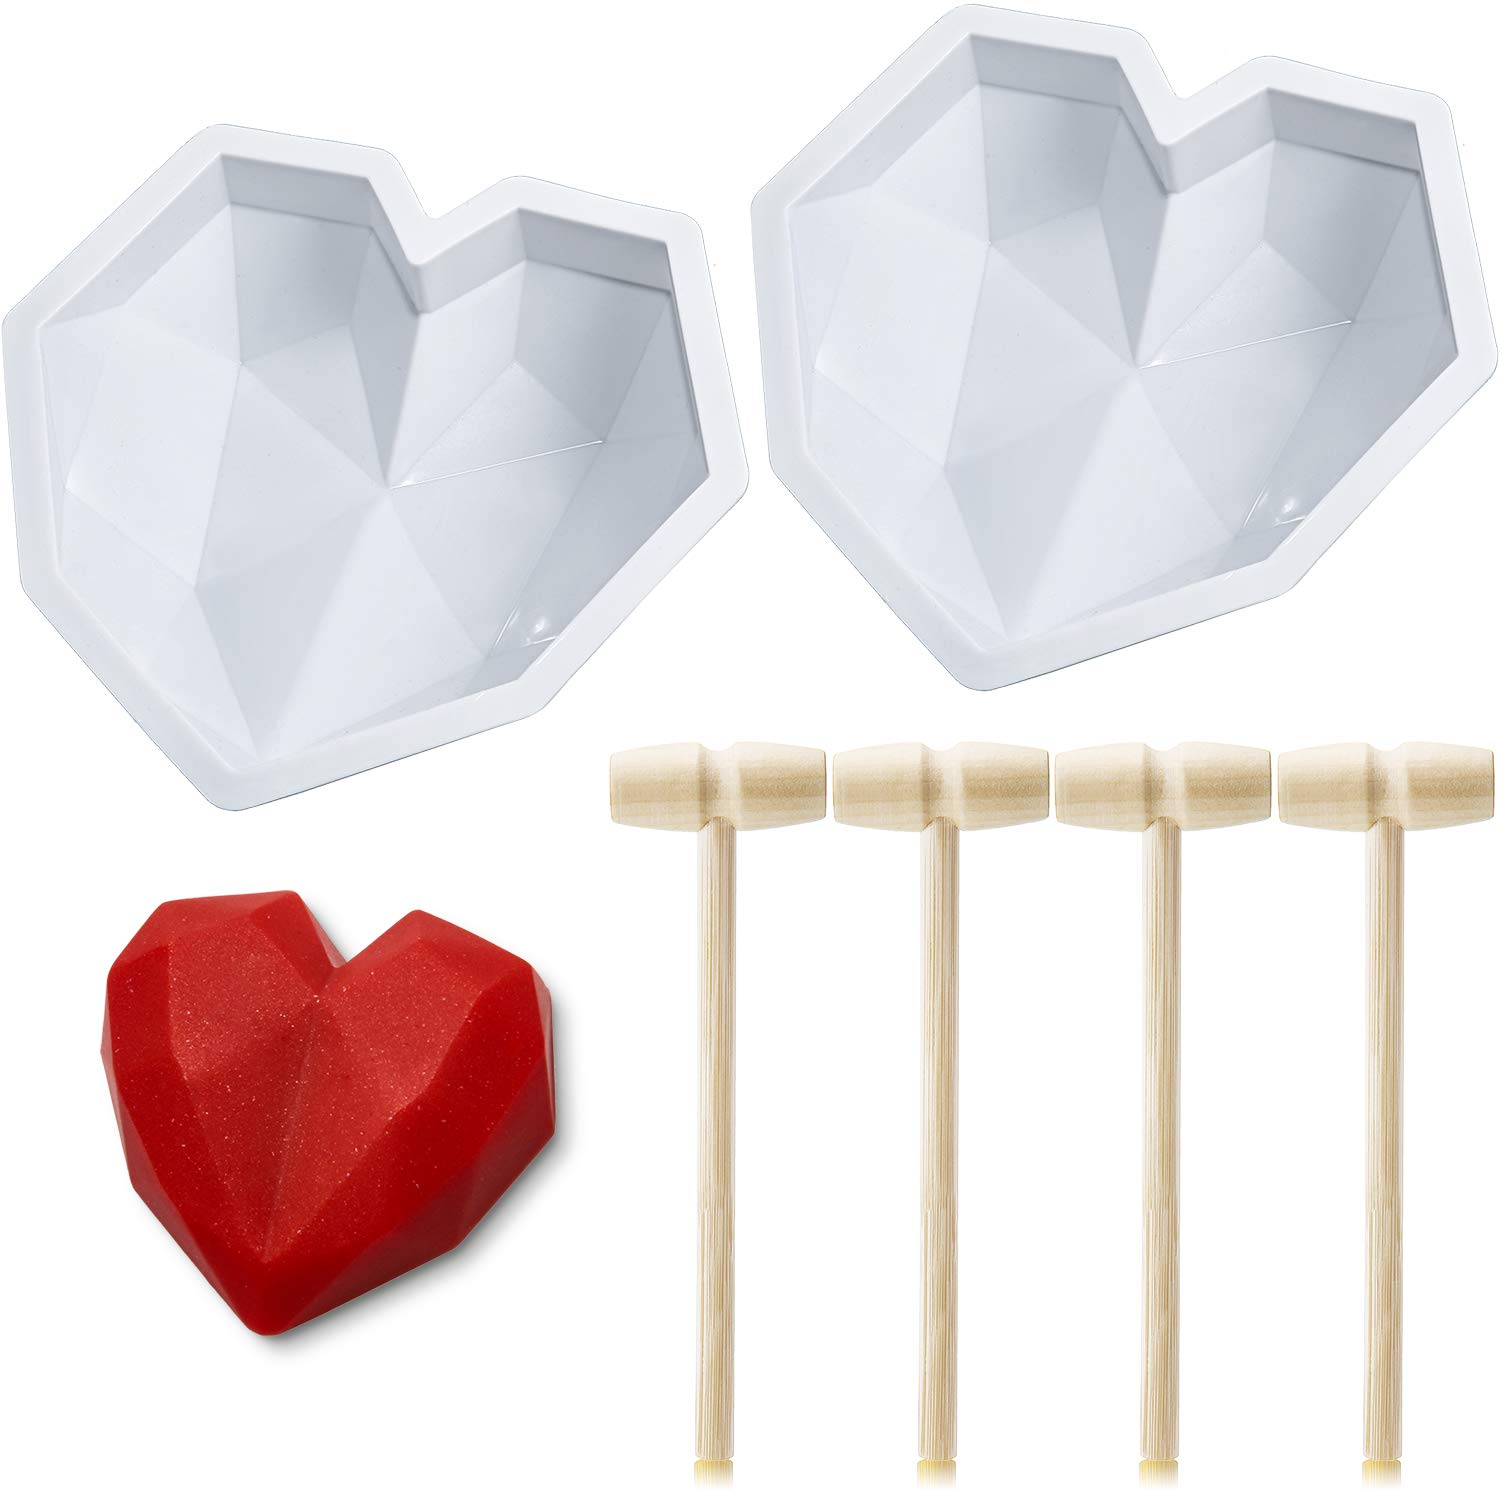 2 Pieces Diamond Heart Mousse Cake Mold Trays 8.7 Inch Silicone Baking Pan Non-Sticky Dessert Mold with 4 Wooden Hammers Mallet Pounding Tools for Baking Chocolate Valentine's Day Cake (White)